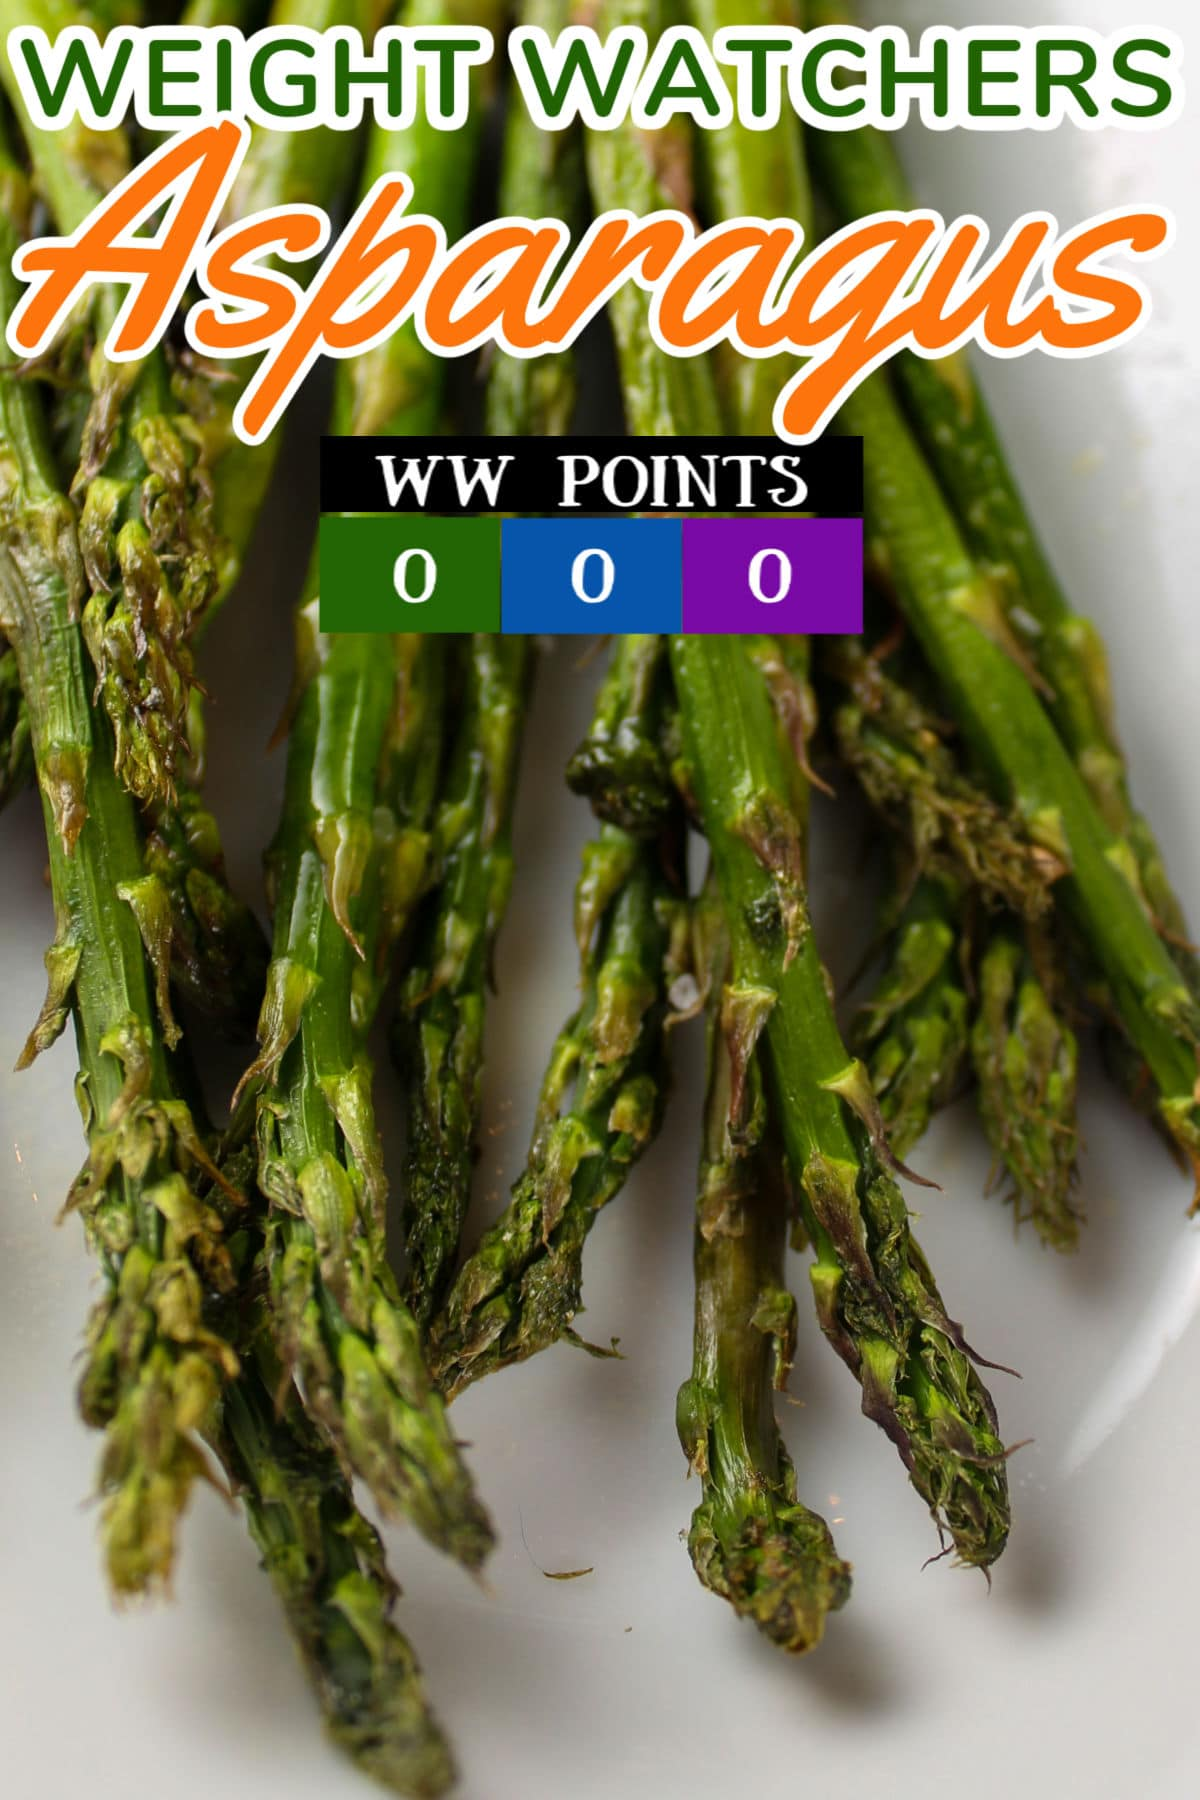 Air Fryer Asparagus is one of my favorite side dishes! You don't need anything but the vegetable and your air fryer - delicious every time! And it only takes a few minutes!  via @foodhussy